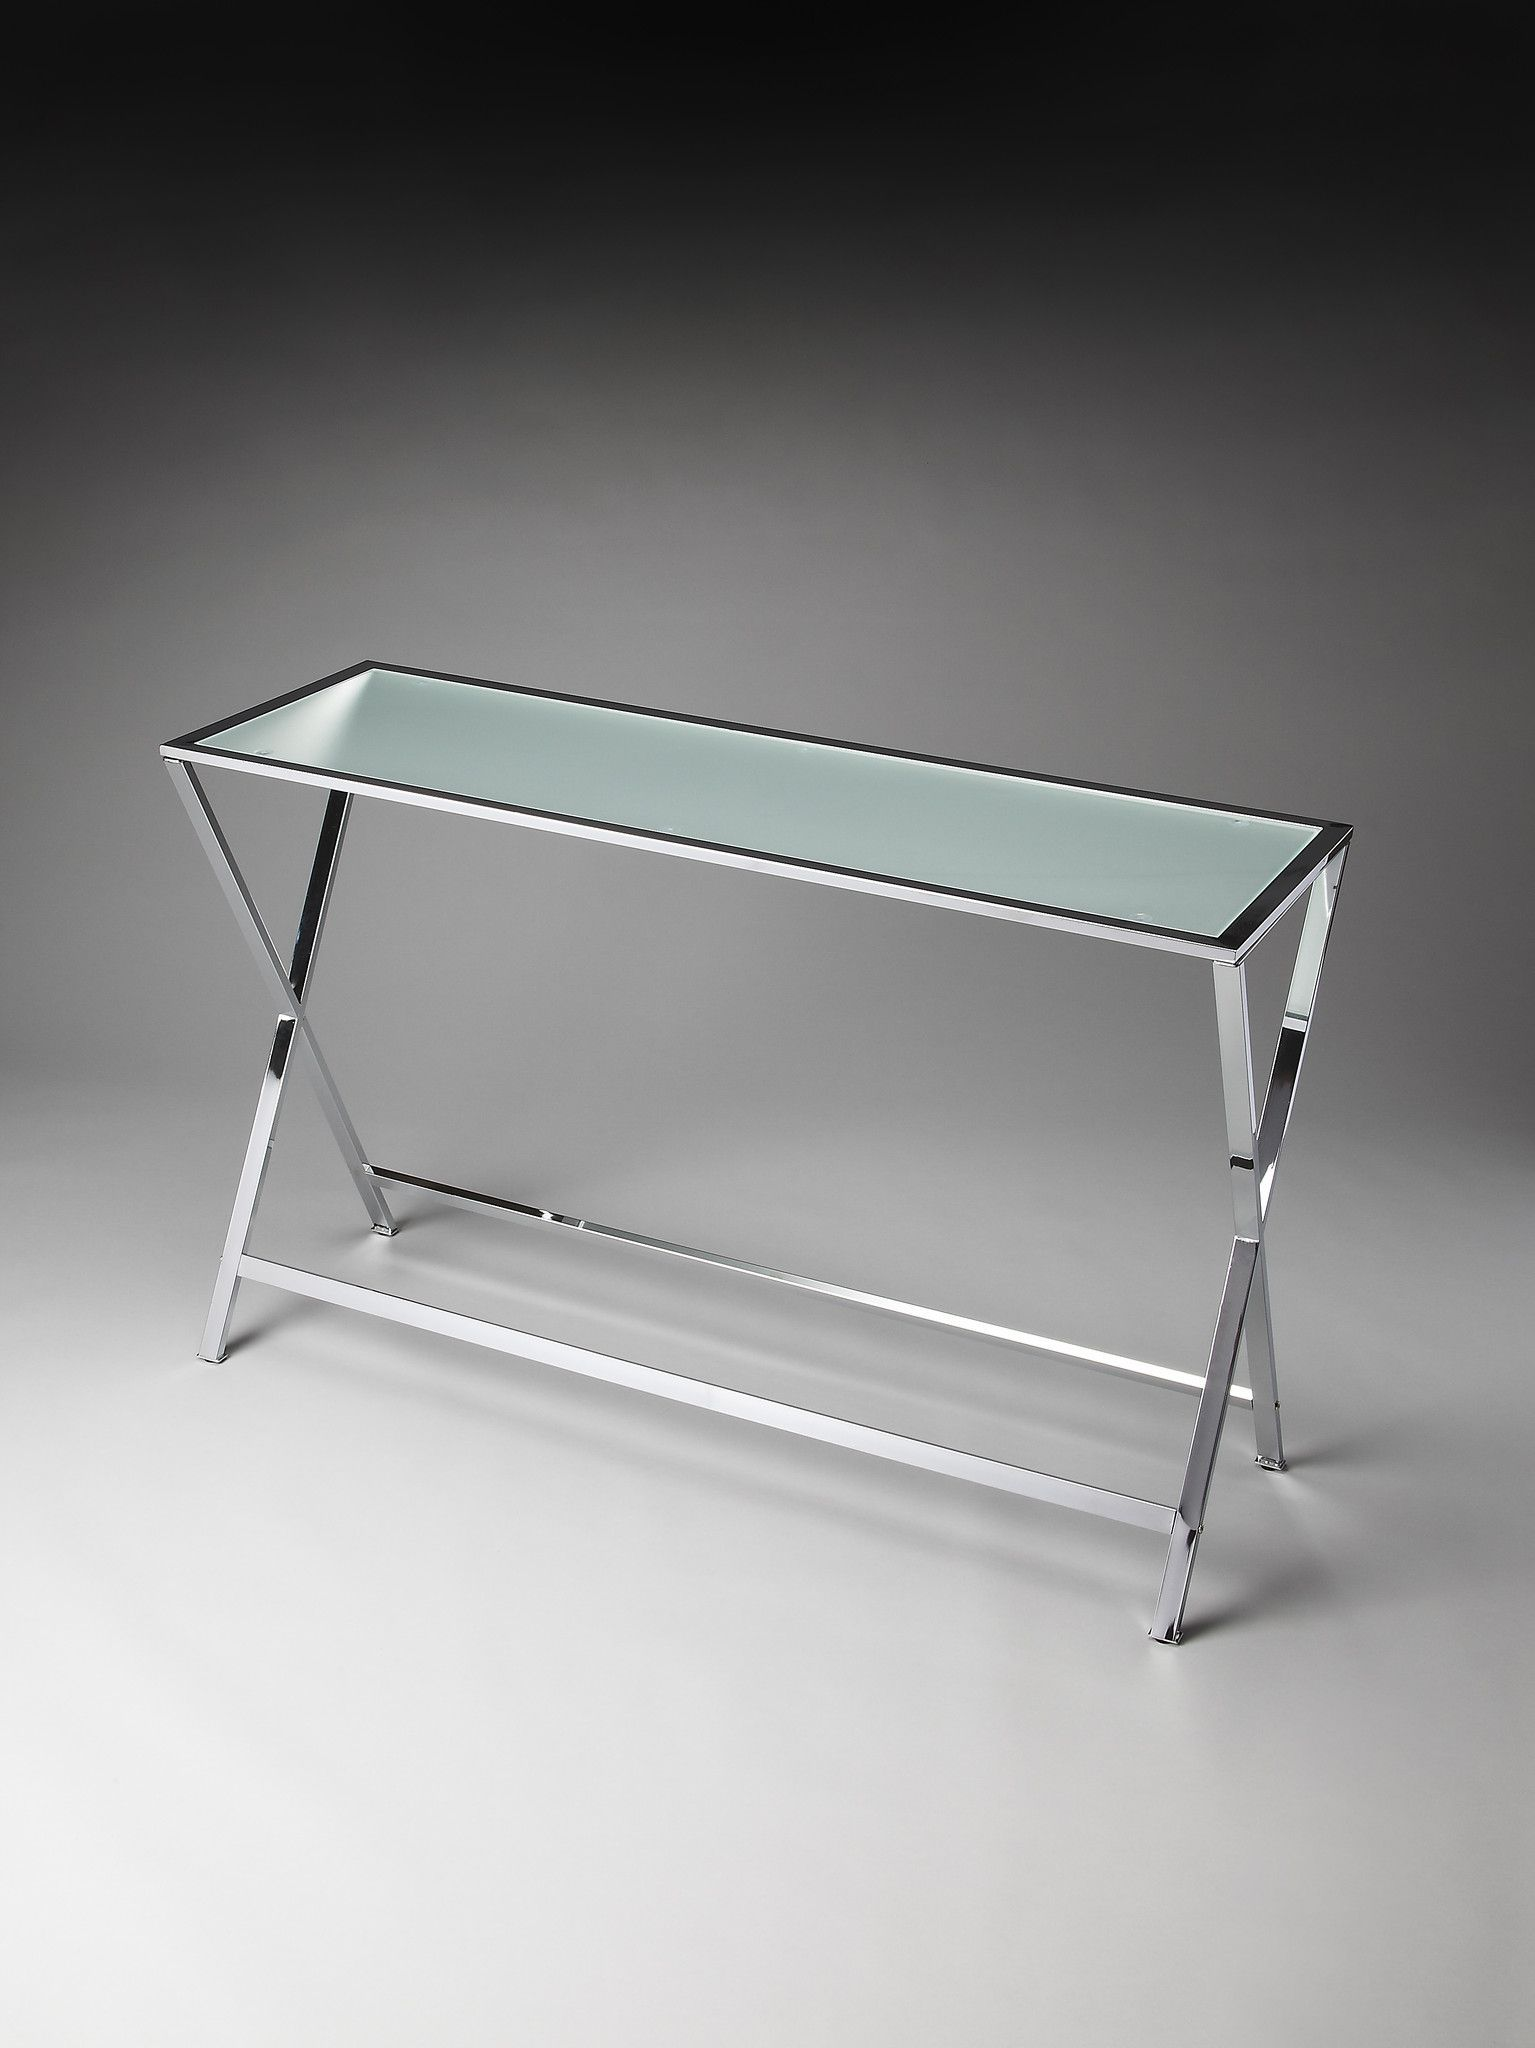 Best 25 Contemporary Houses Ideas On Pinterest: Best 25+ Contemporary Console Tables Ideas On Pinterest